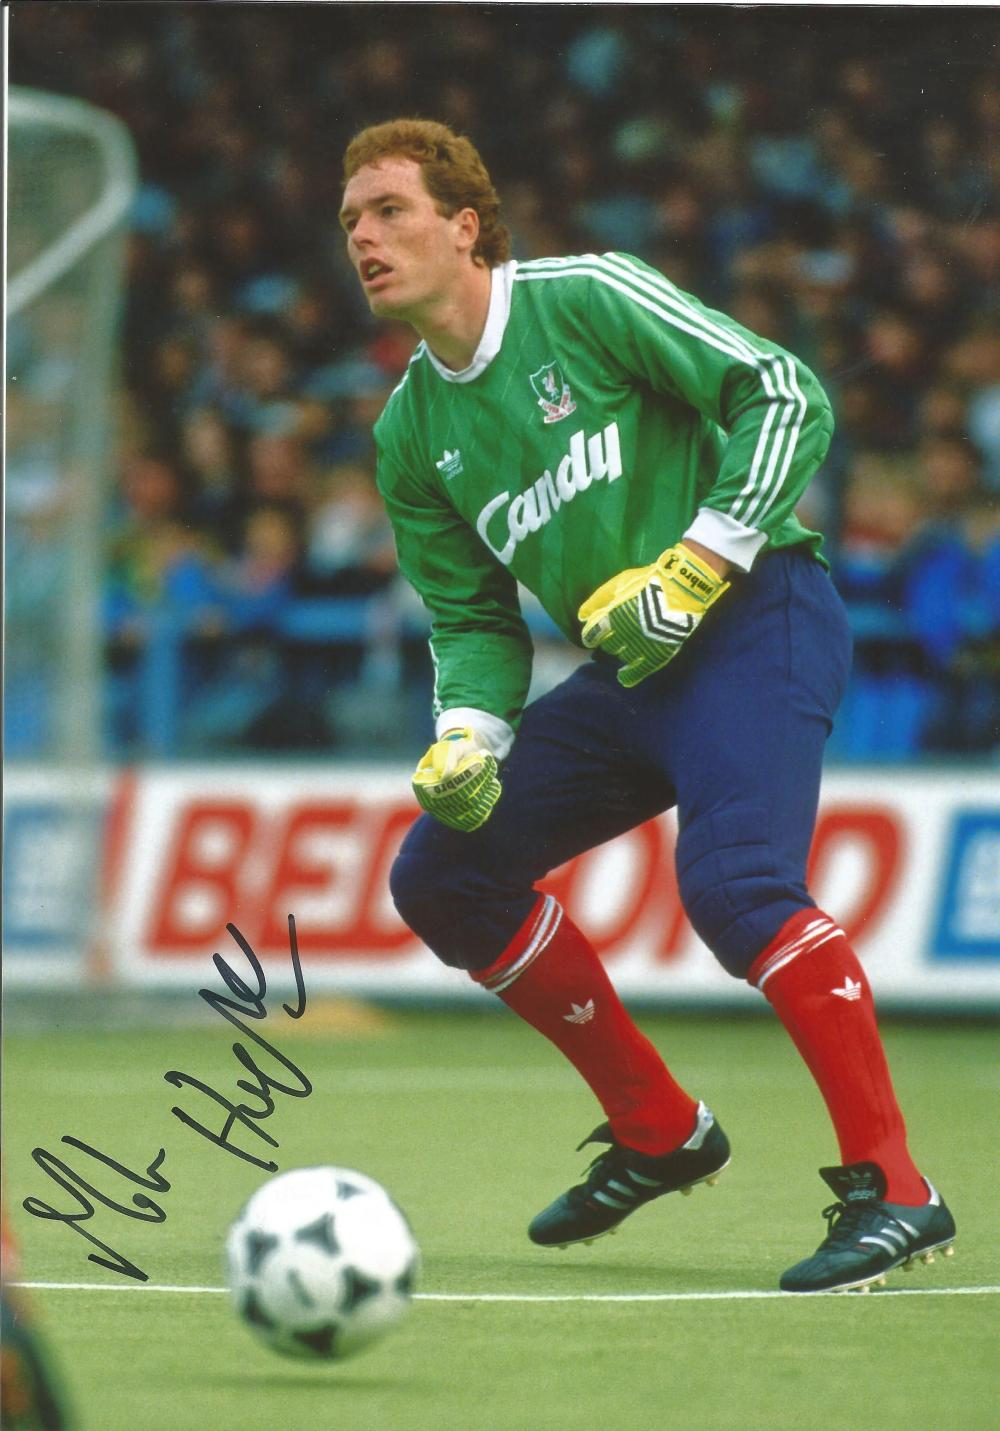 Mike Hooper Signed Liverpool 8x12 Photo. Good condition. All autographs come with a Certificate of